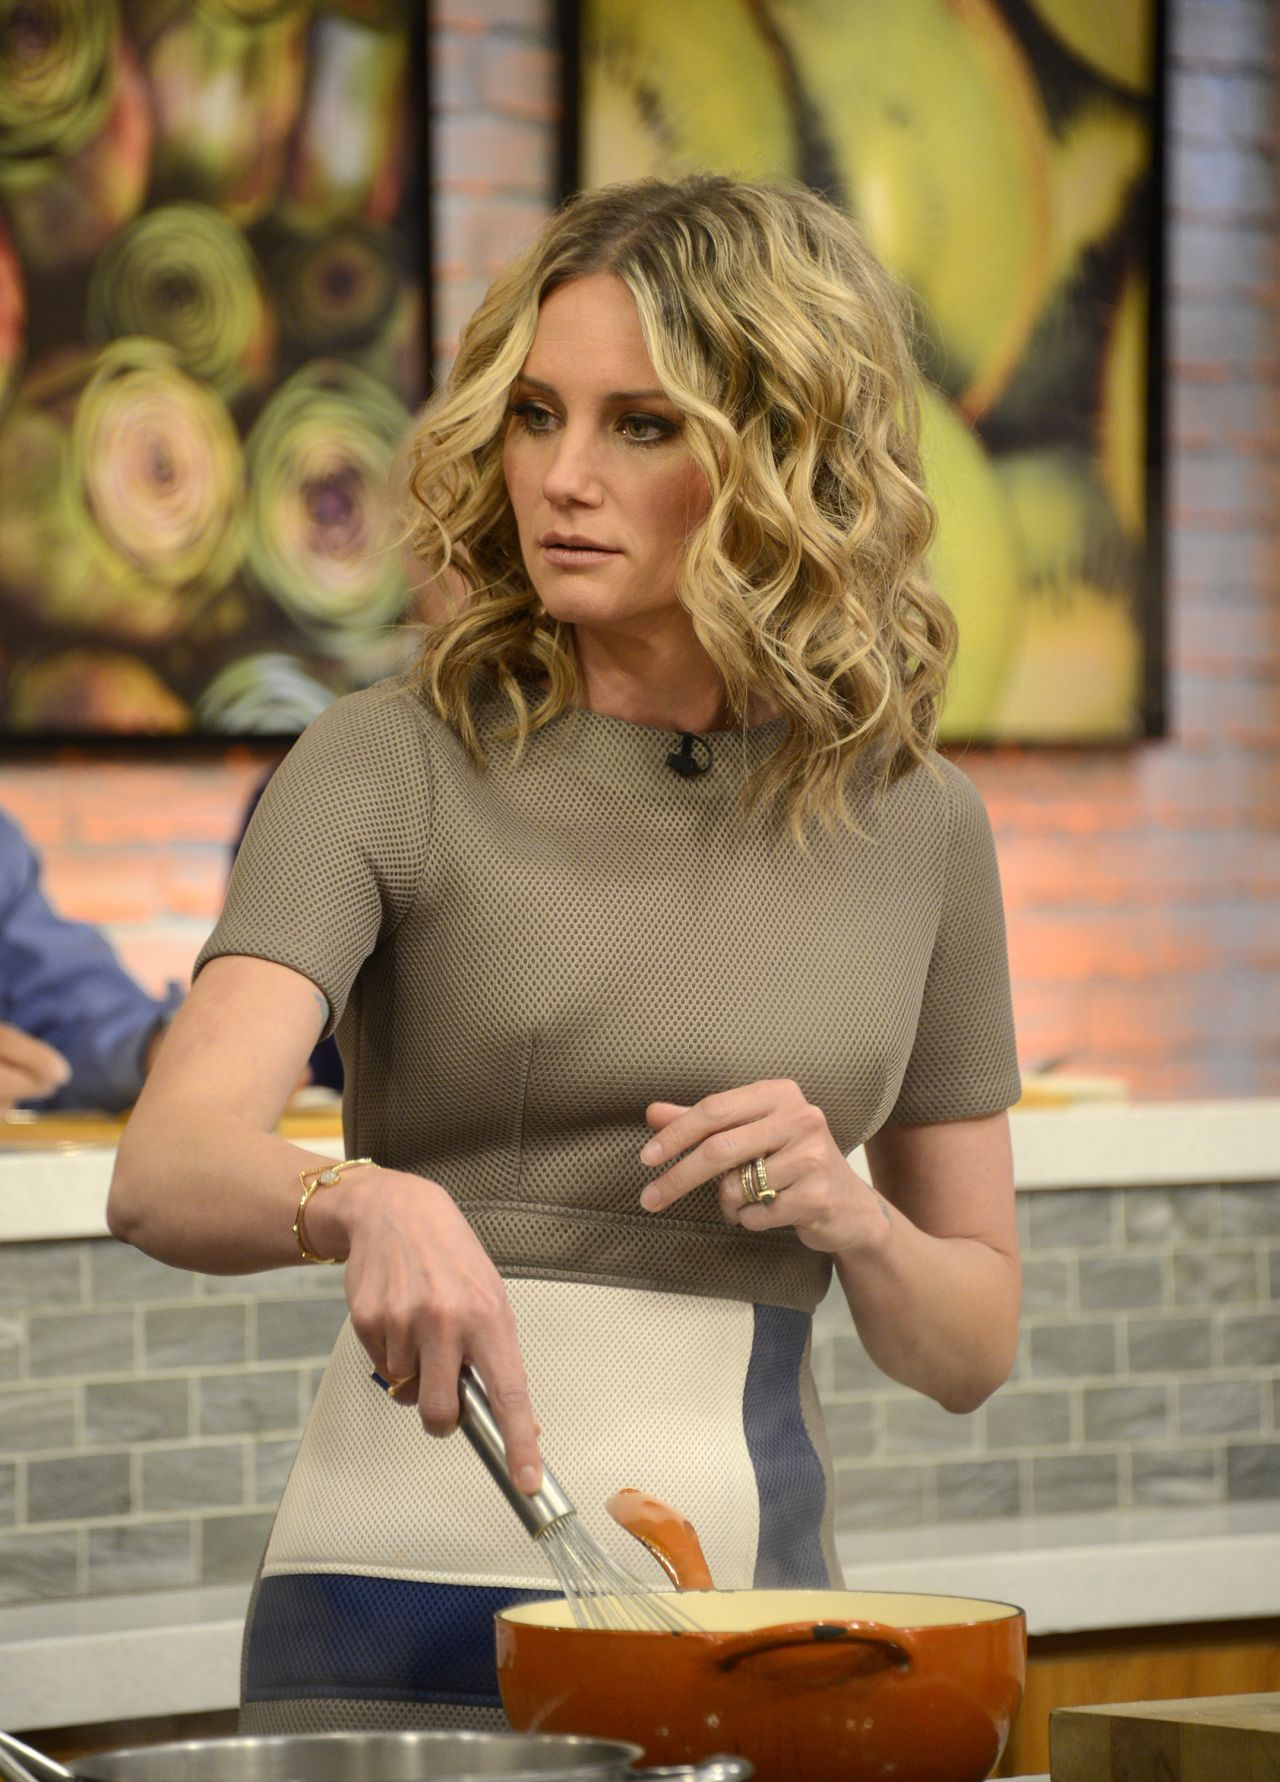 Jennifer Nettles - The Chew Stills 5202016-5853